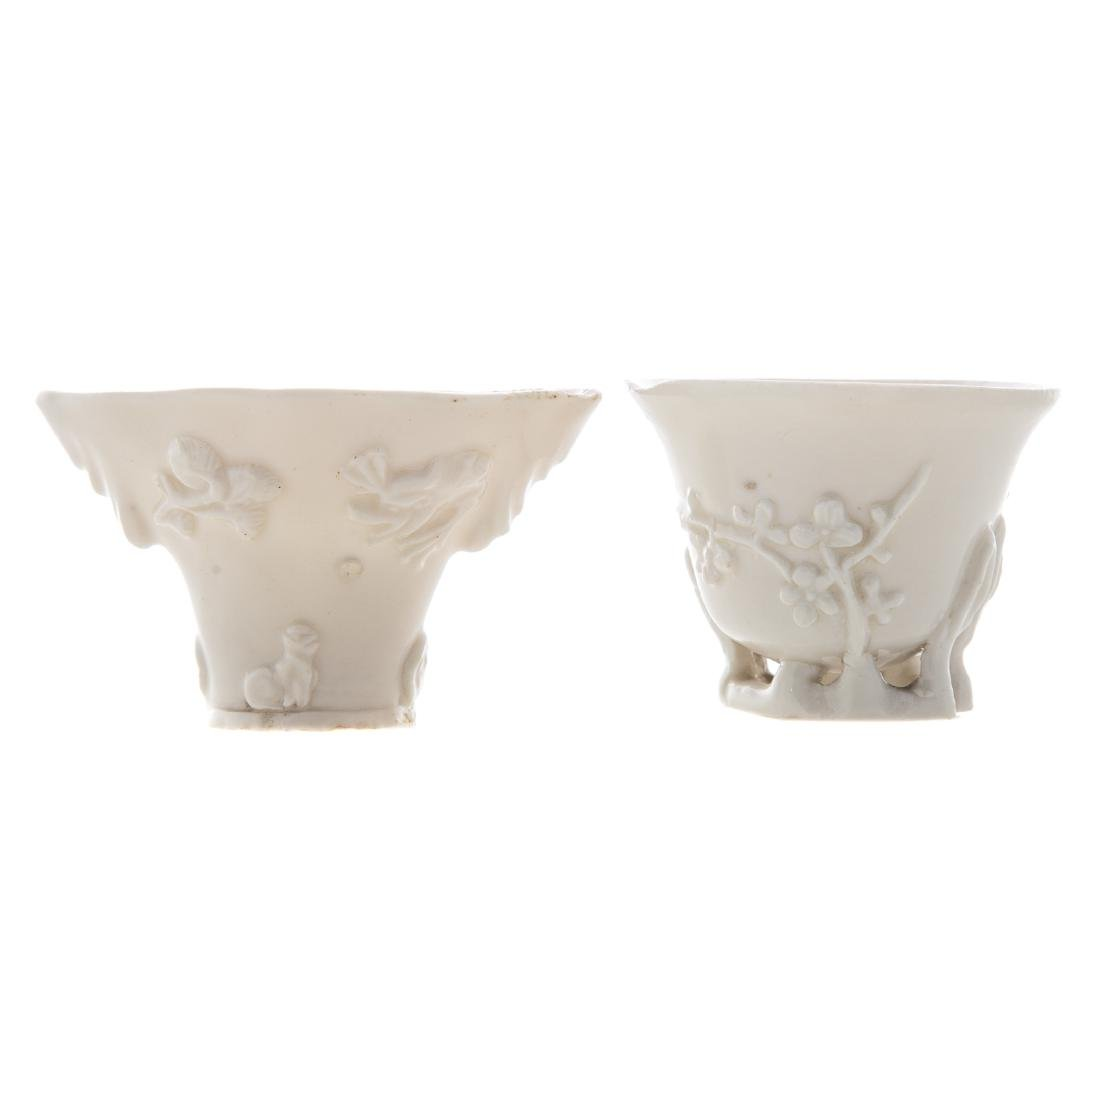 Two Chinese blanc de chine porcelain libation cups